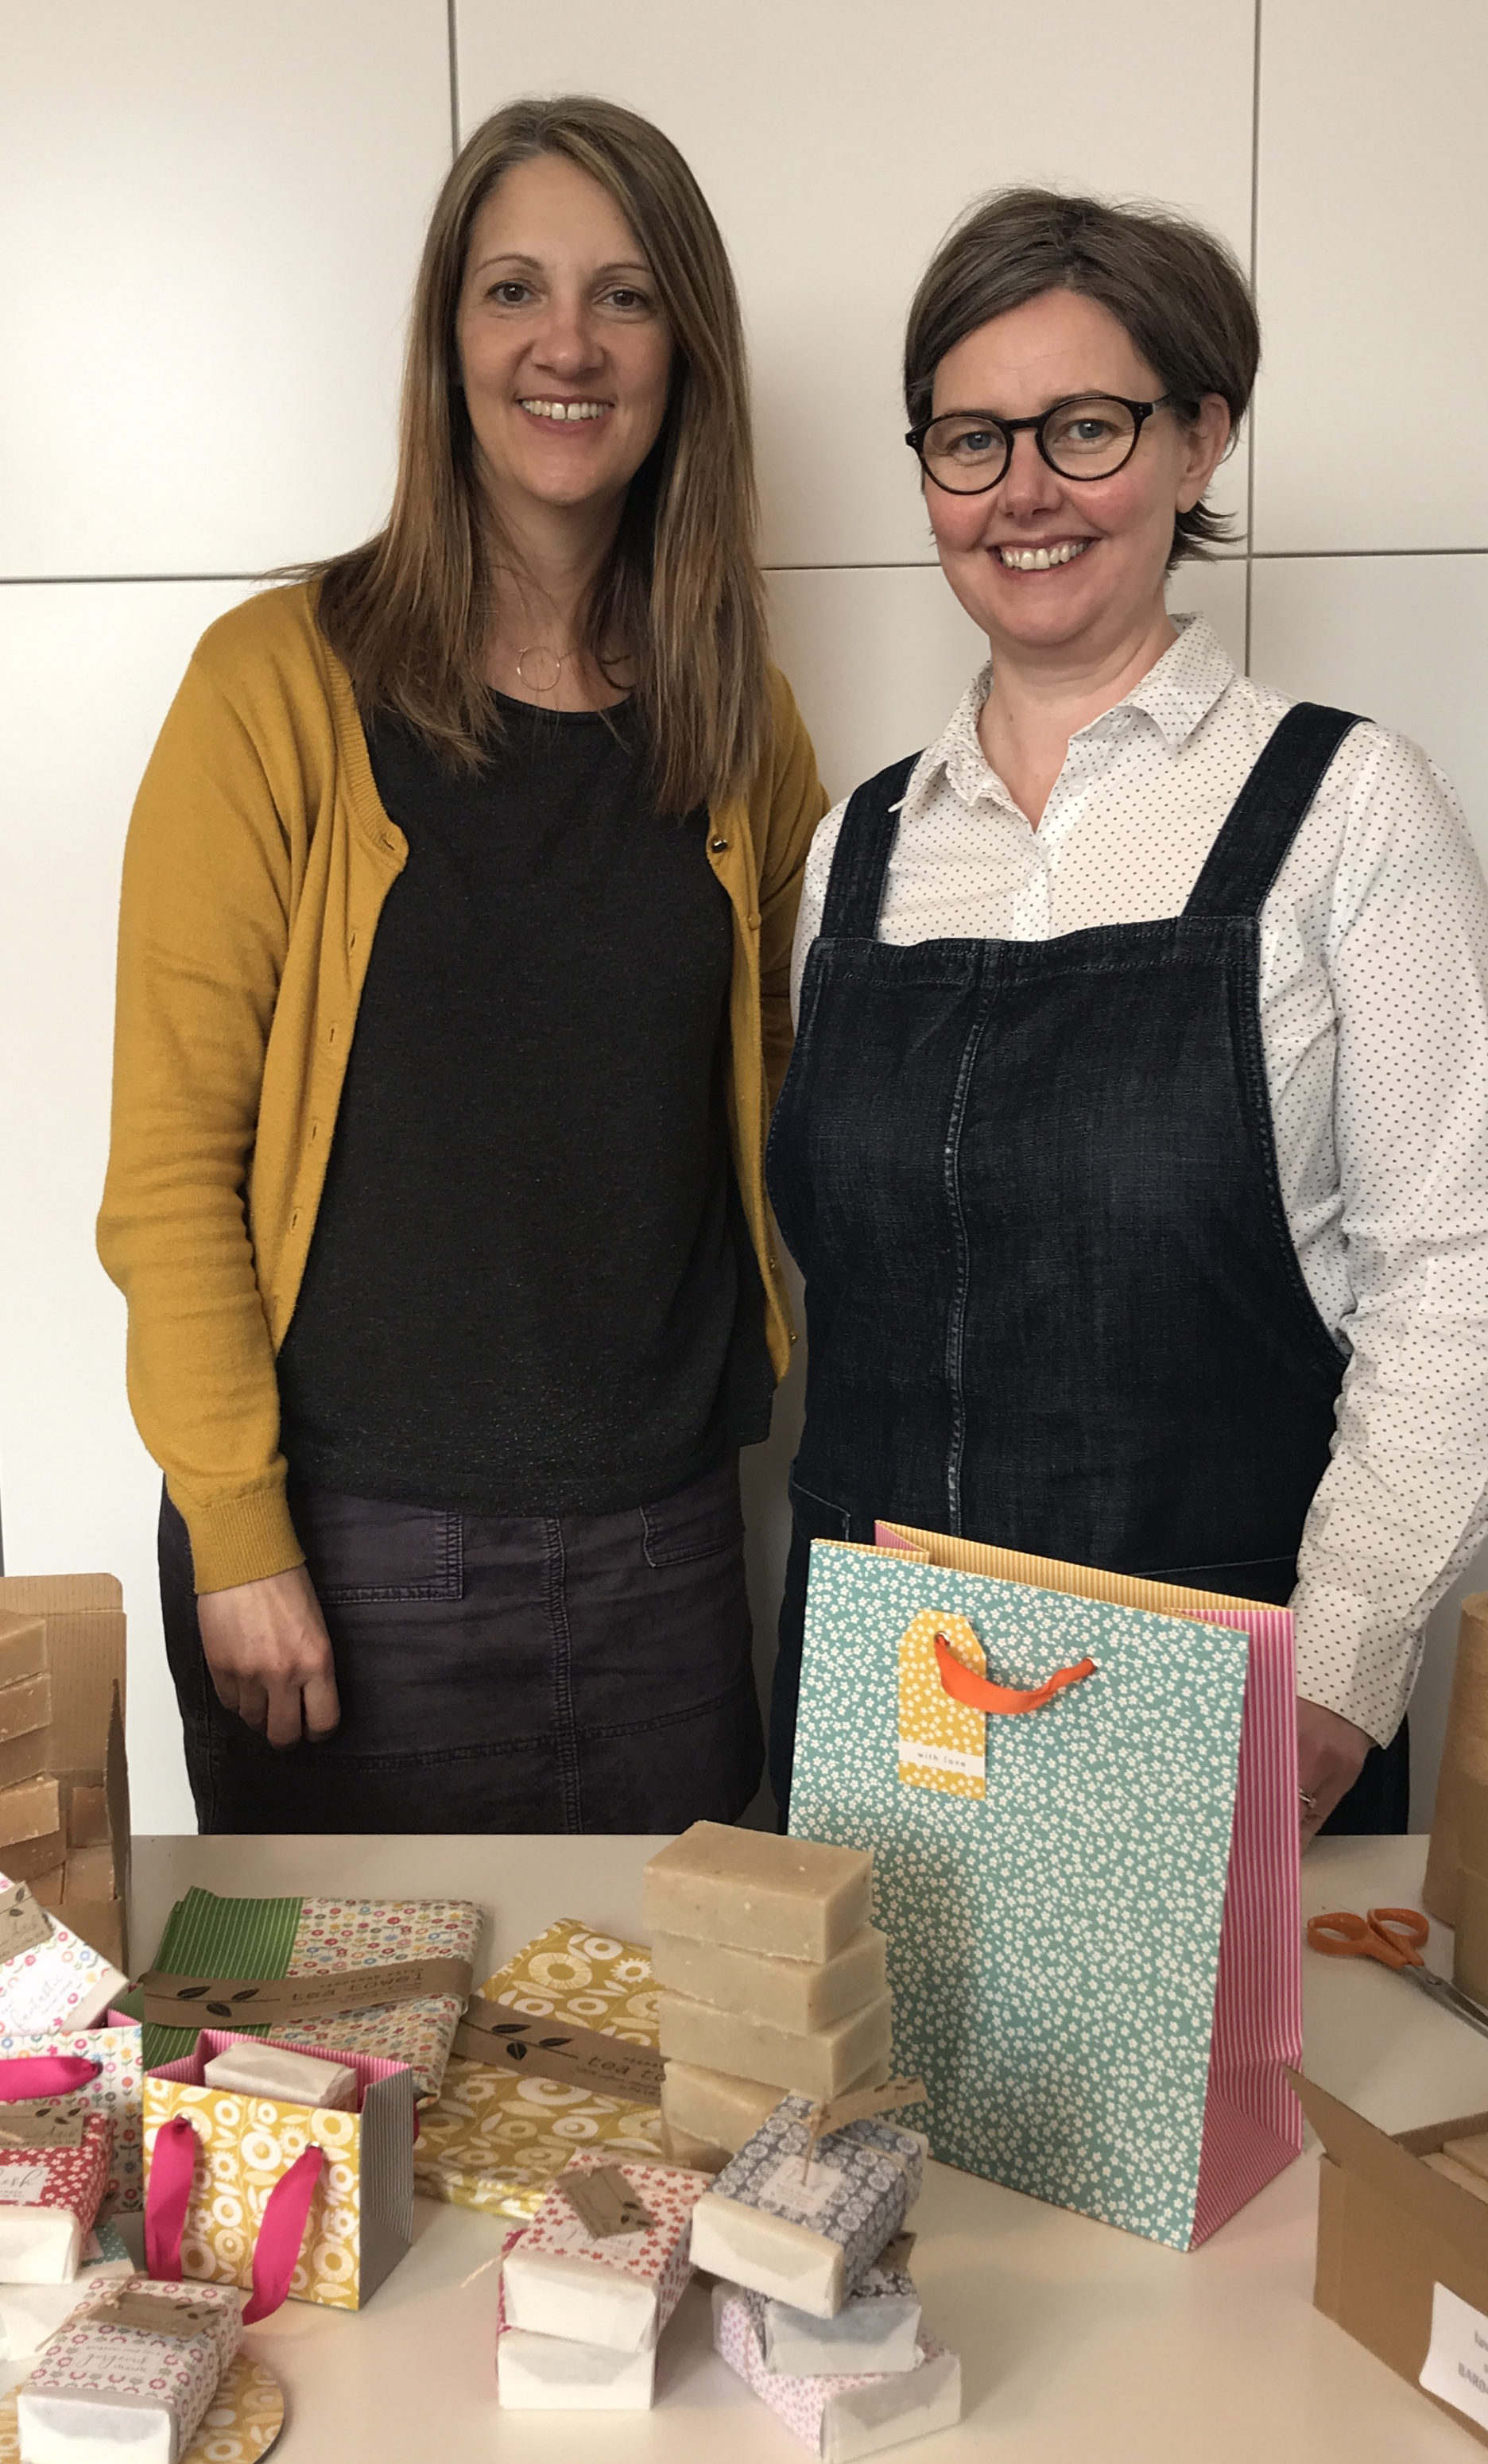 Above: Cinnamon Aitch's co-founders Sara Burford and Sarah Fitzpatrick with some of the new Cherry Blossom gift lines.